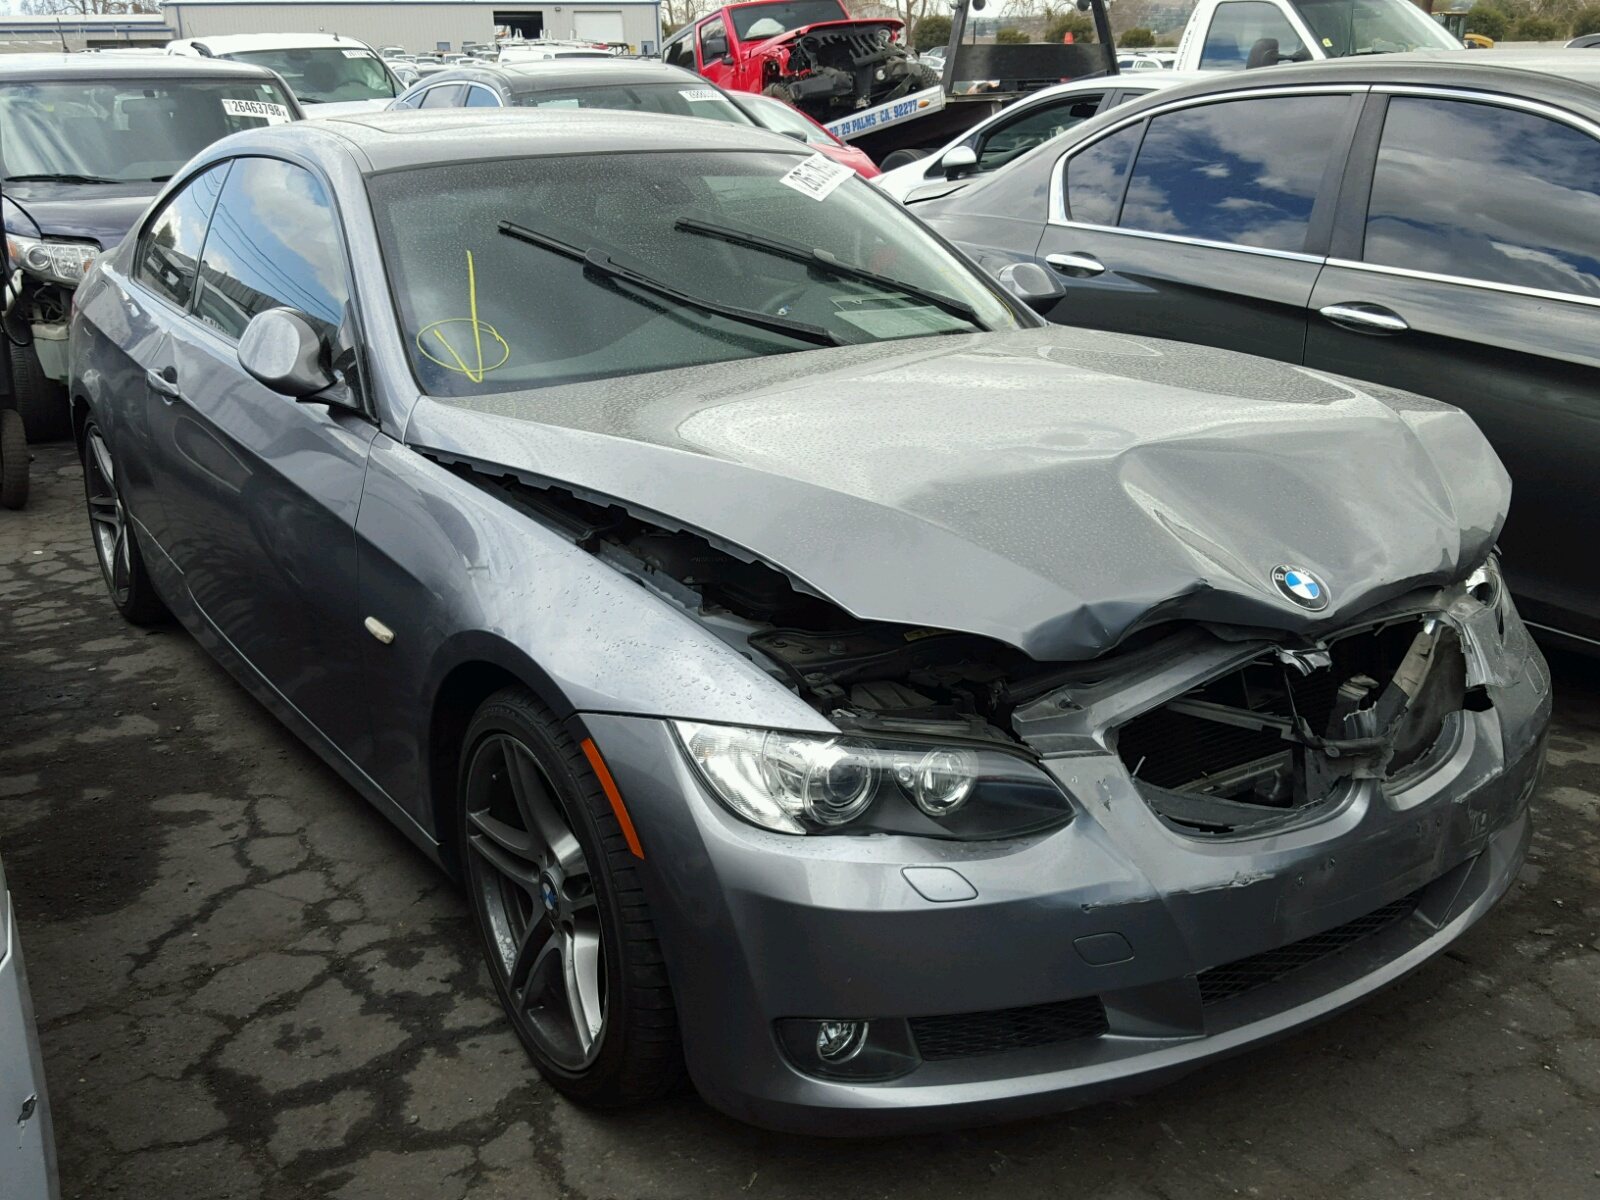 Auto Auction Ended On Vin Wbaph73549a173161 2009 Bmw 328 In On Toronto